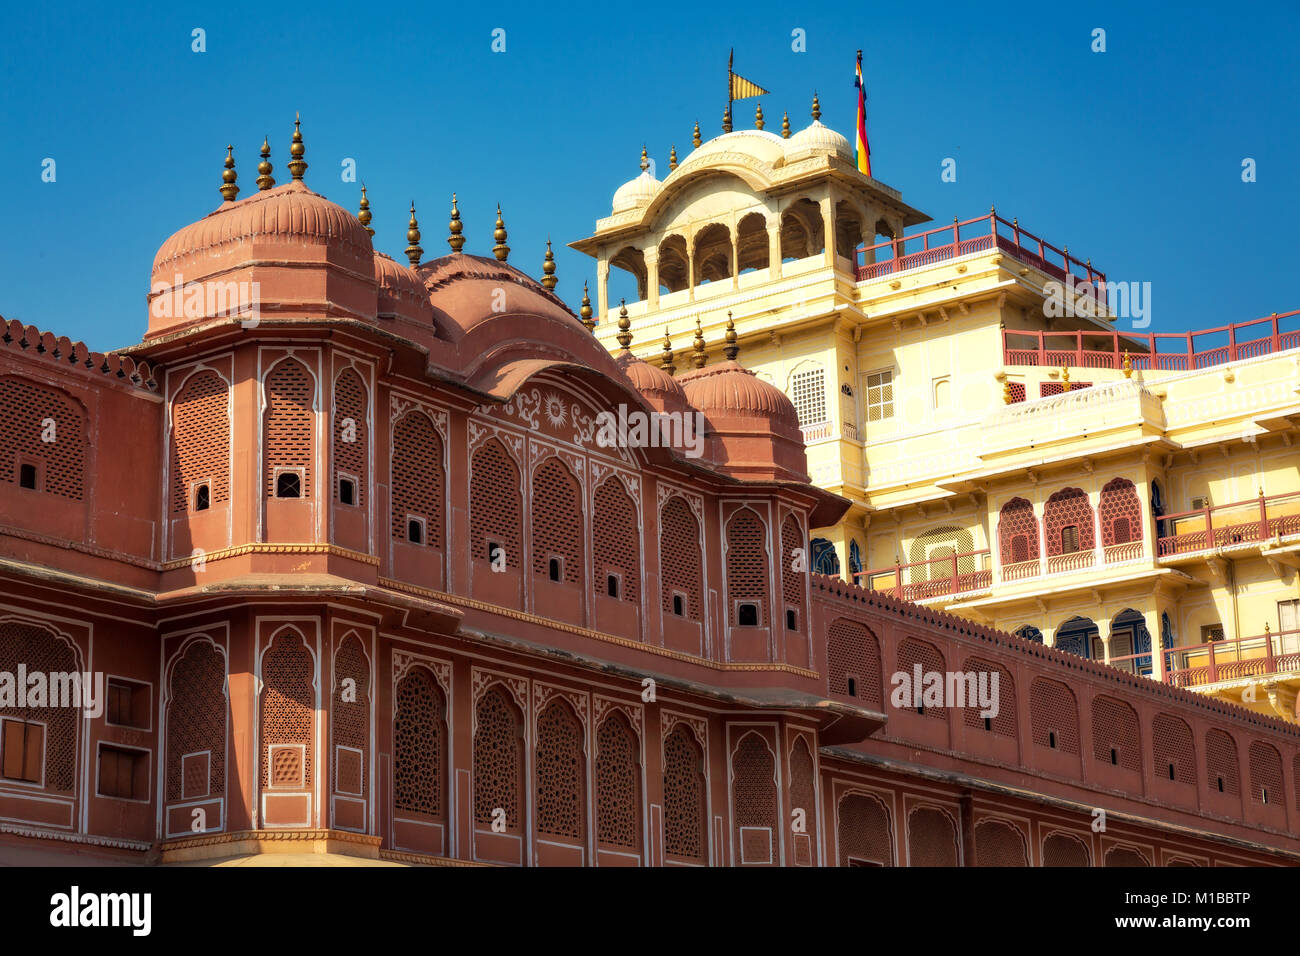 City Palace Jaipur Rajasthan - Chandra Mahal museum architecture structure - Stock Image